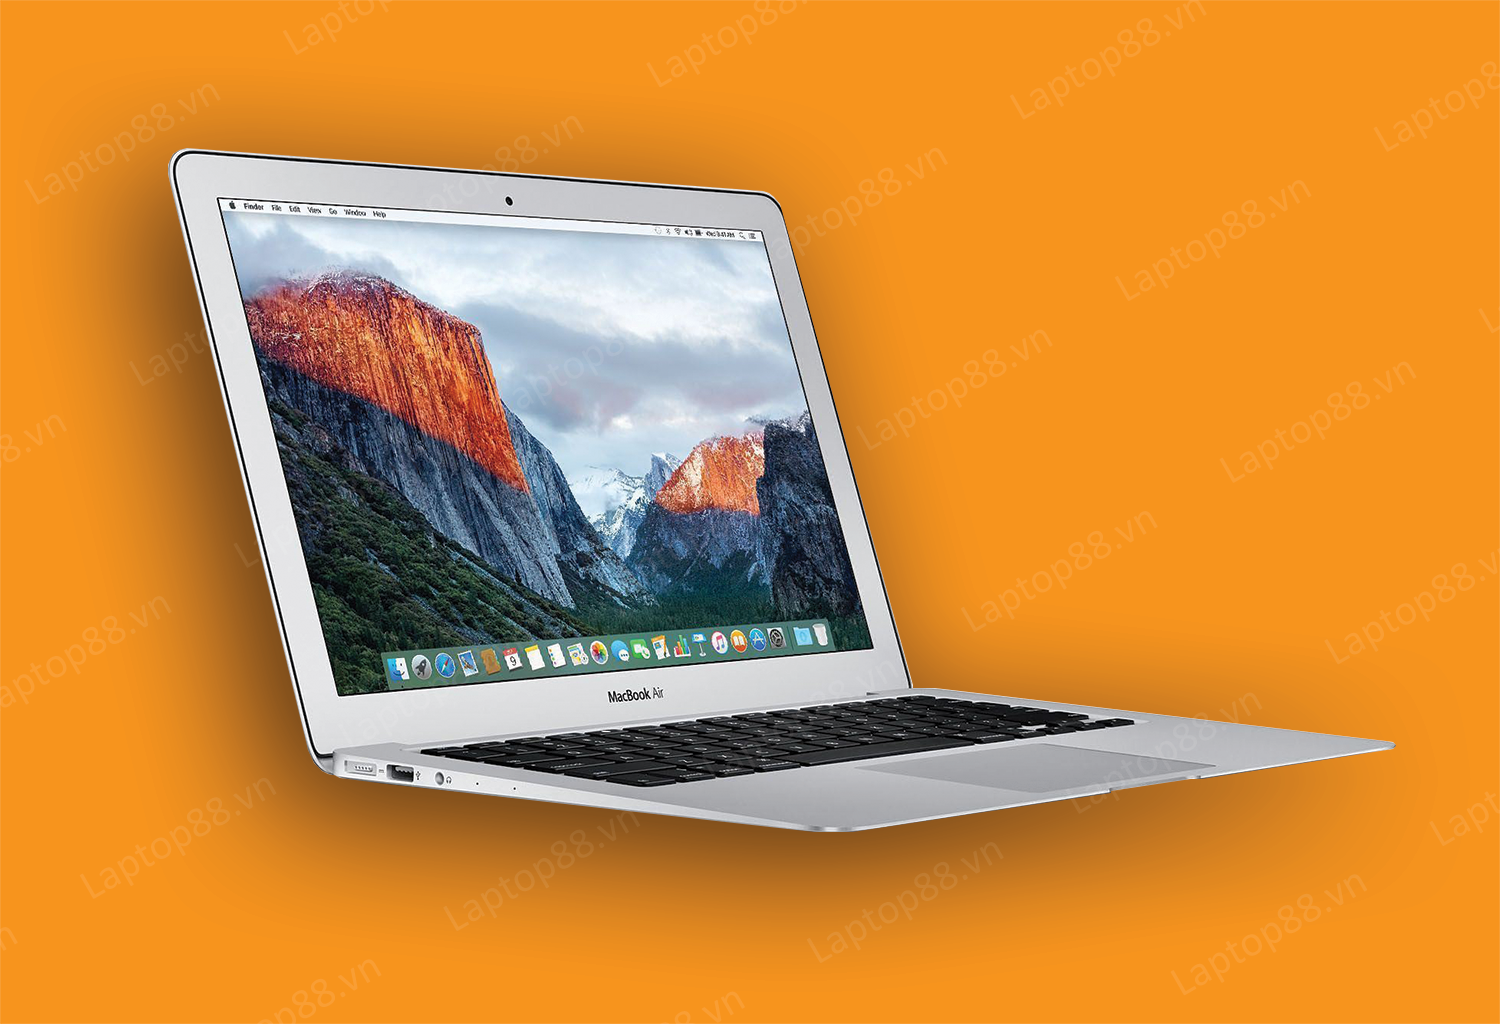 Macbook Air 13.3 2015 - MJVE2 (Intel Core i5, RAM 4GB, SSD 128GB, Intel HD Graphics 6000, 13,3 inch)2